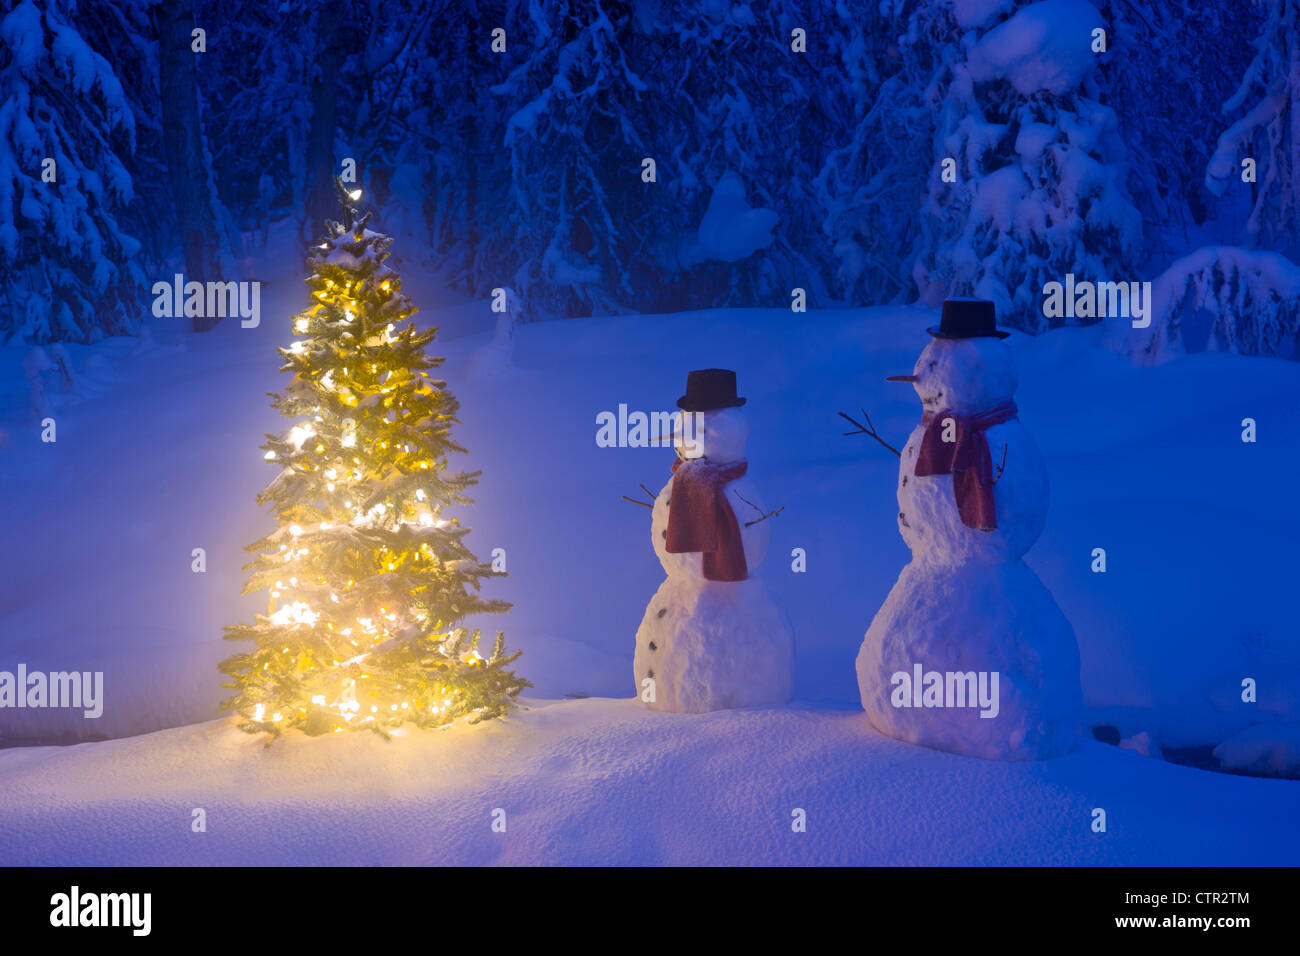 Snowmen Christmas Tree High Resolution Stock Photography And Images Alamy